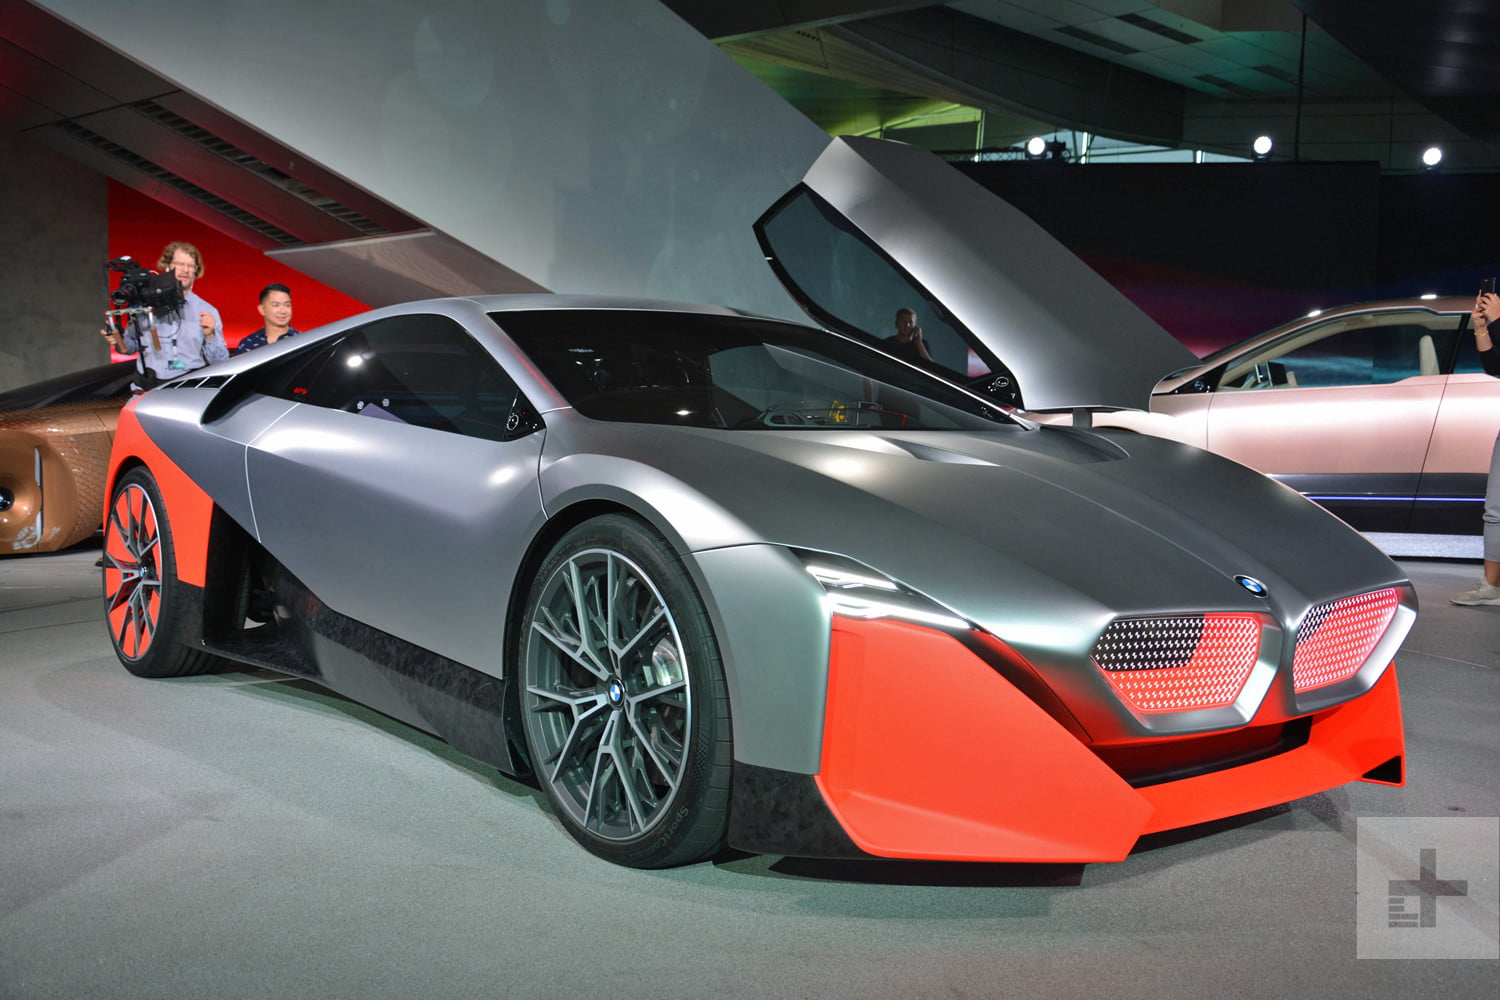 Bmw Vision M Next Concept Previews The Sports Car Of The